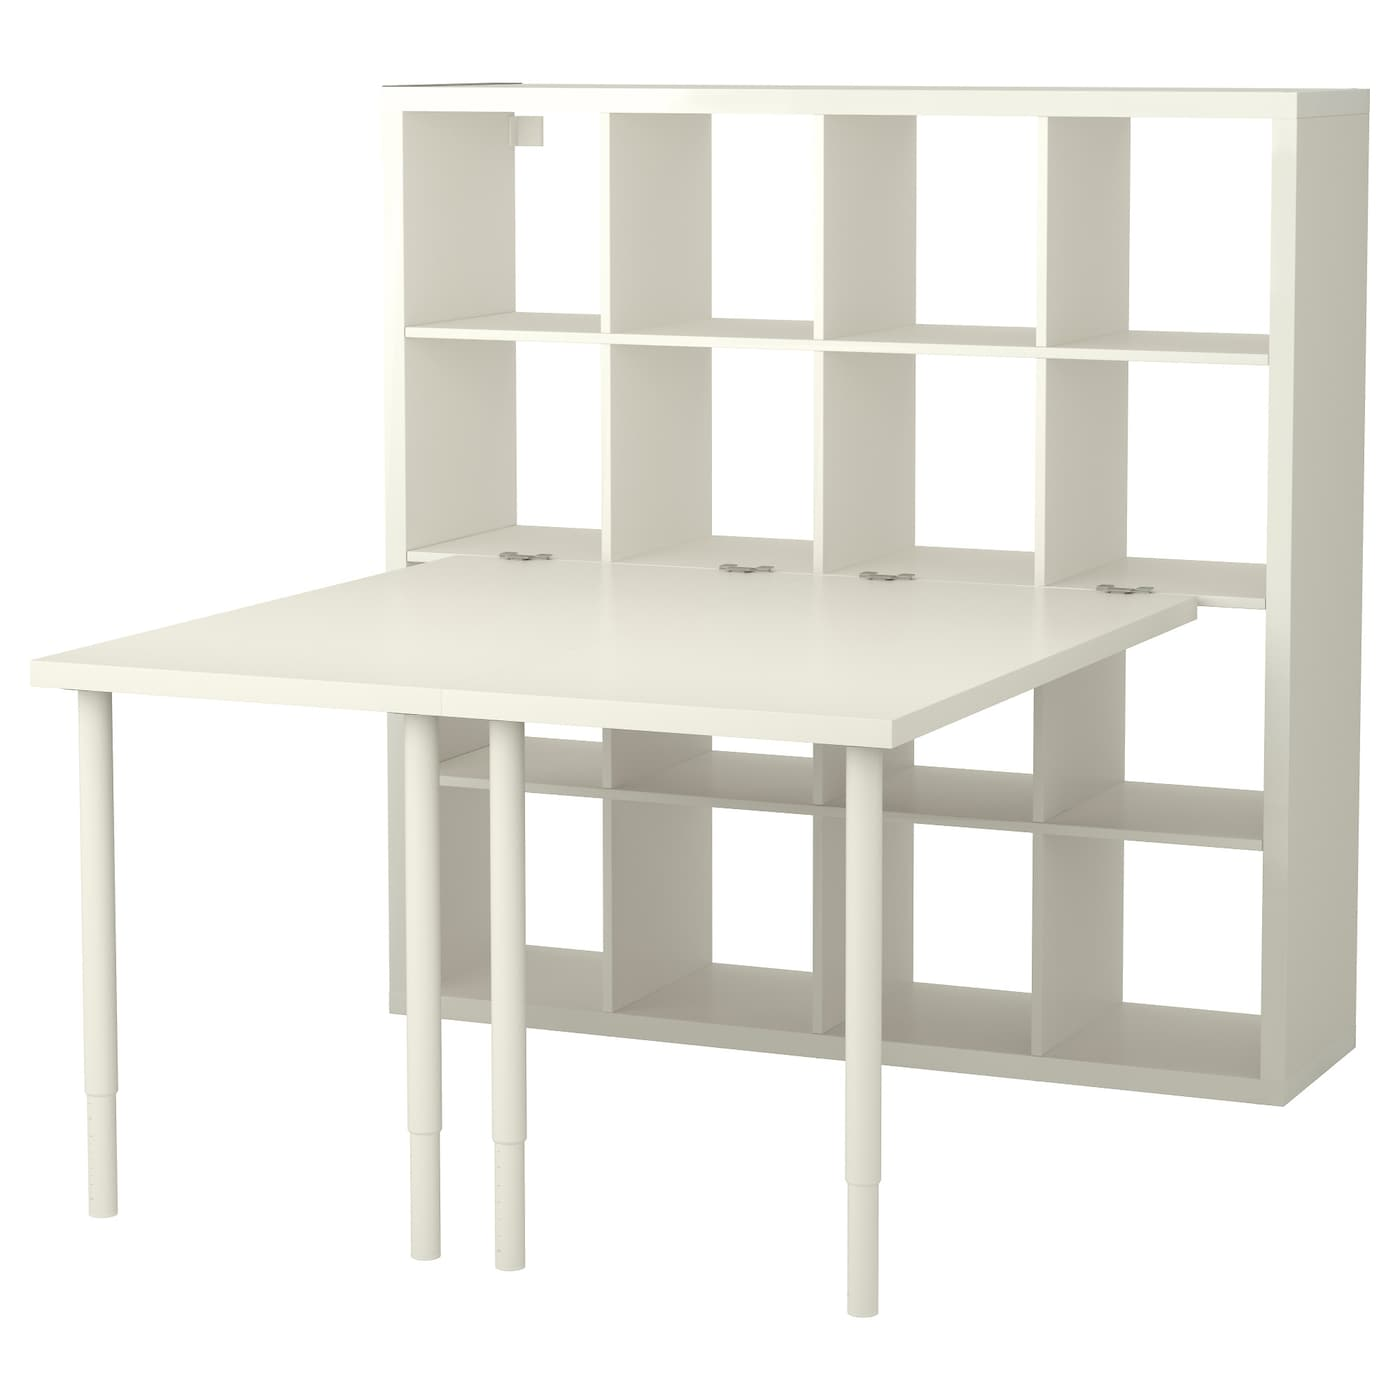 kallax combinaison bureau blanc 147 x 147 cm ikea. Black Bedroom Furniture Sets. Home Design Ideas